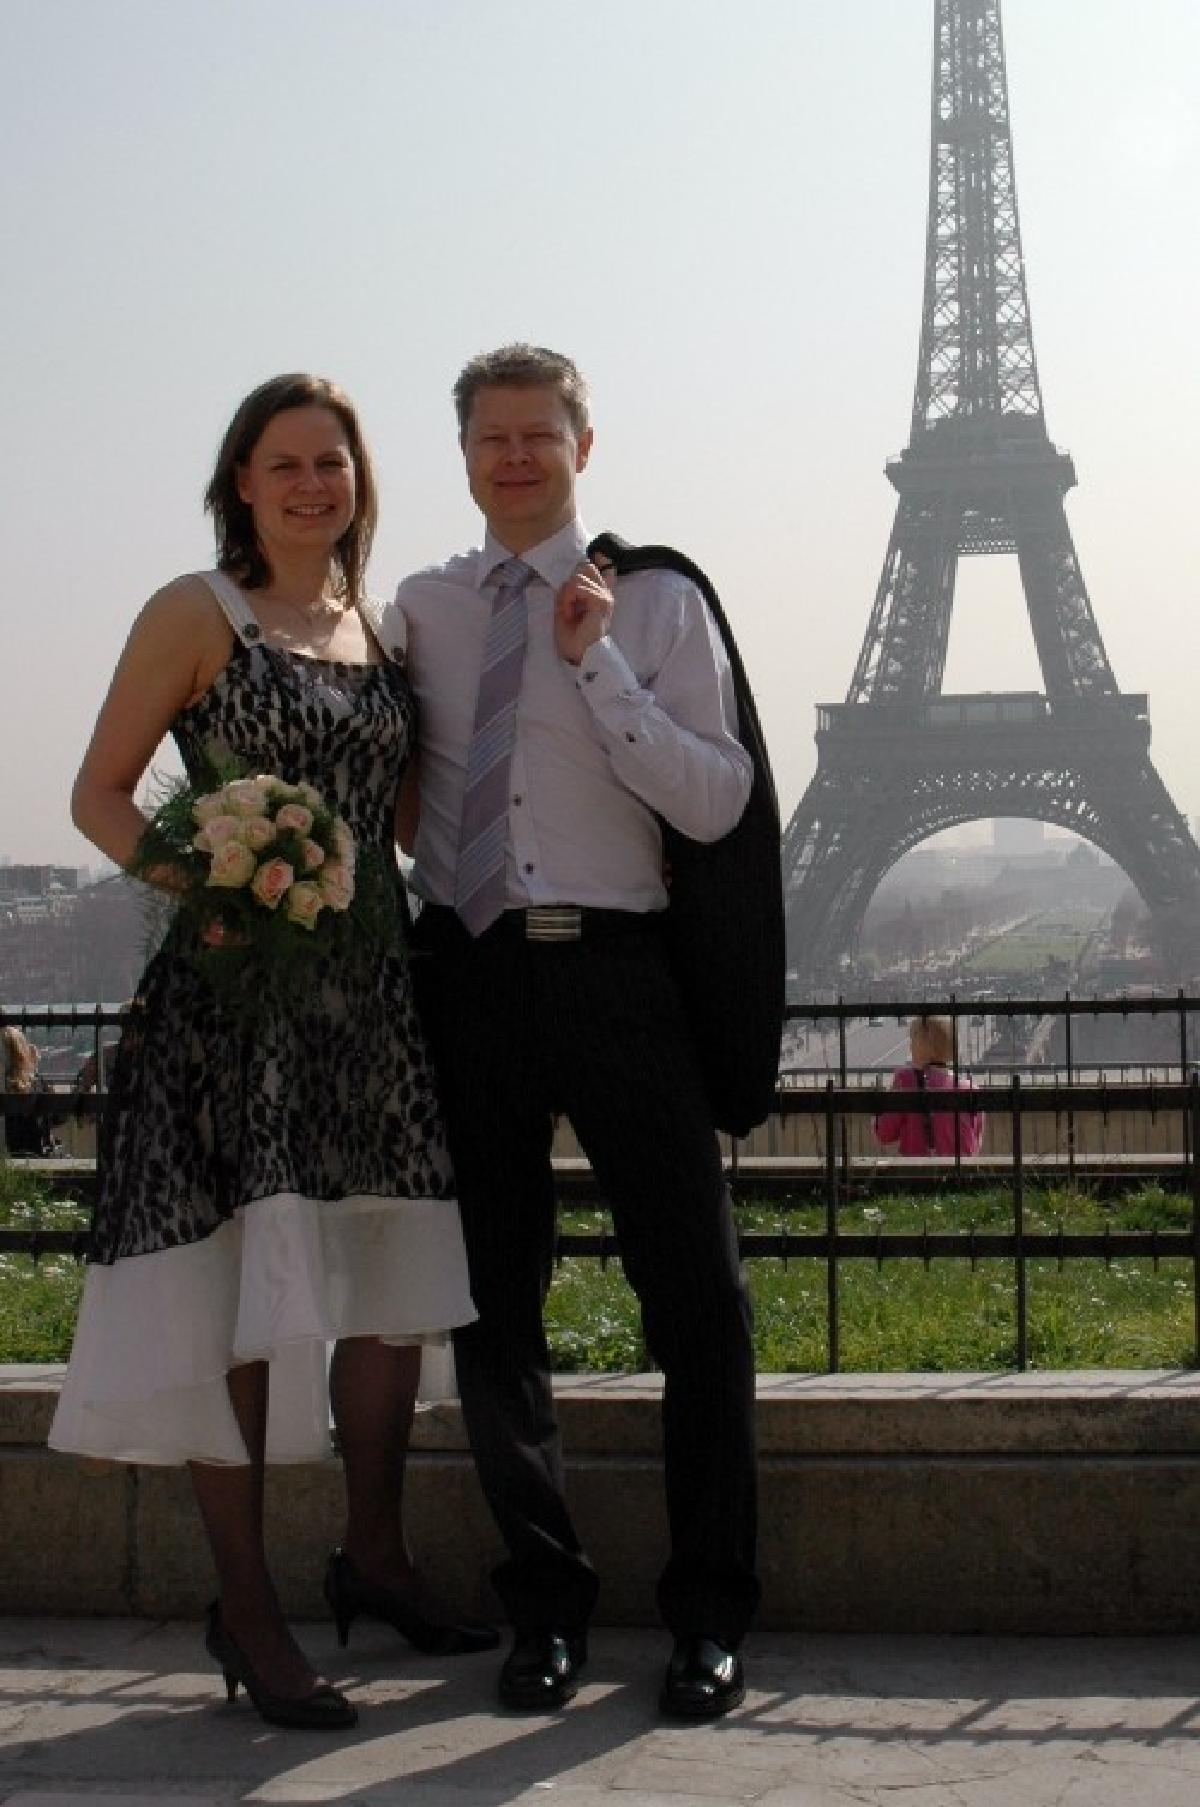 Anette og Morten, Paris, 25. mars 2011